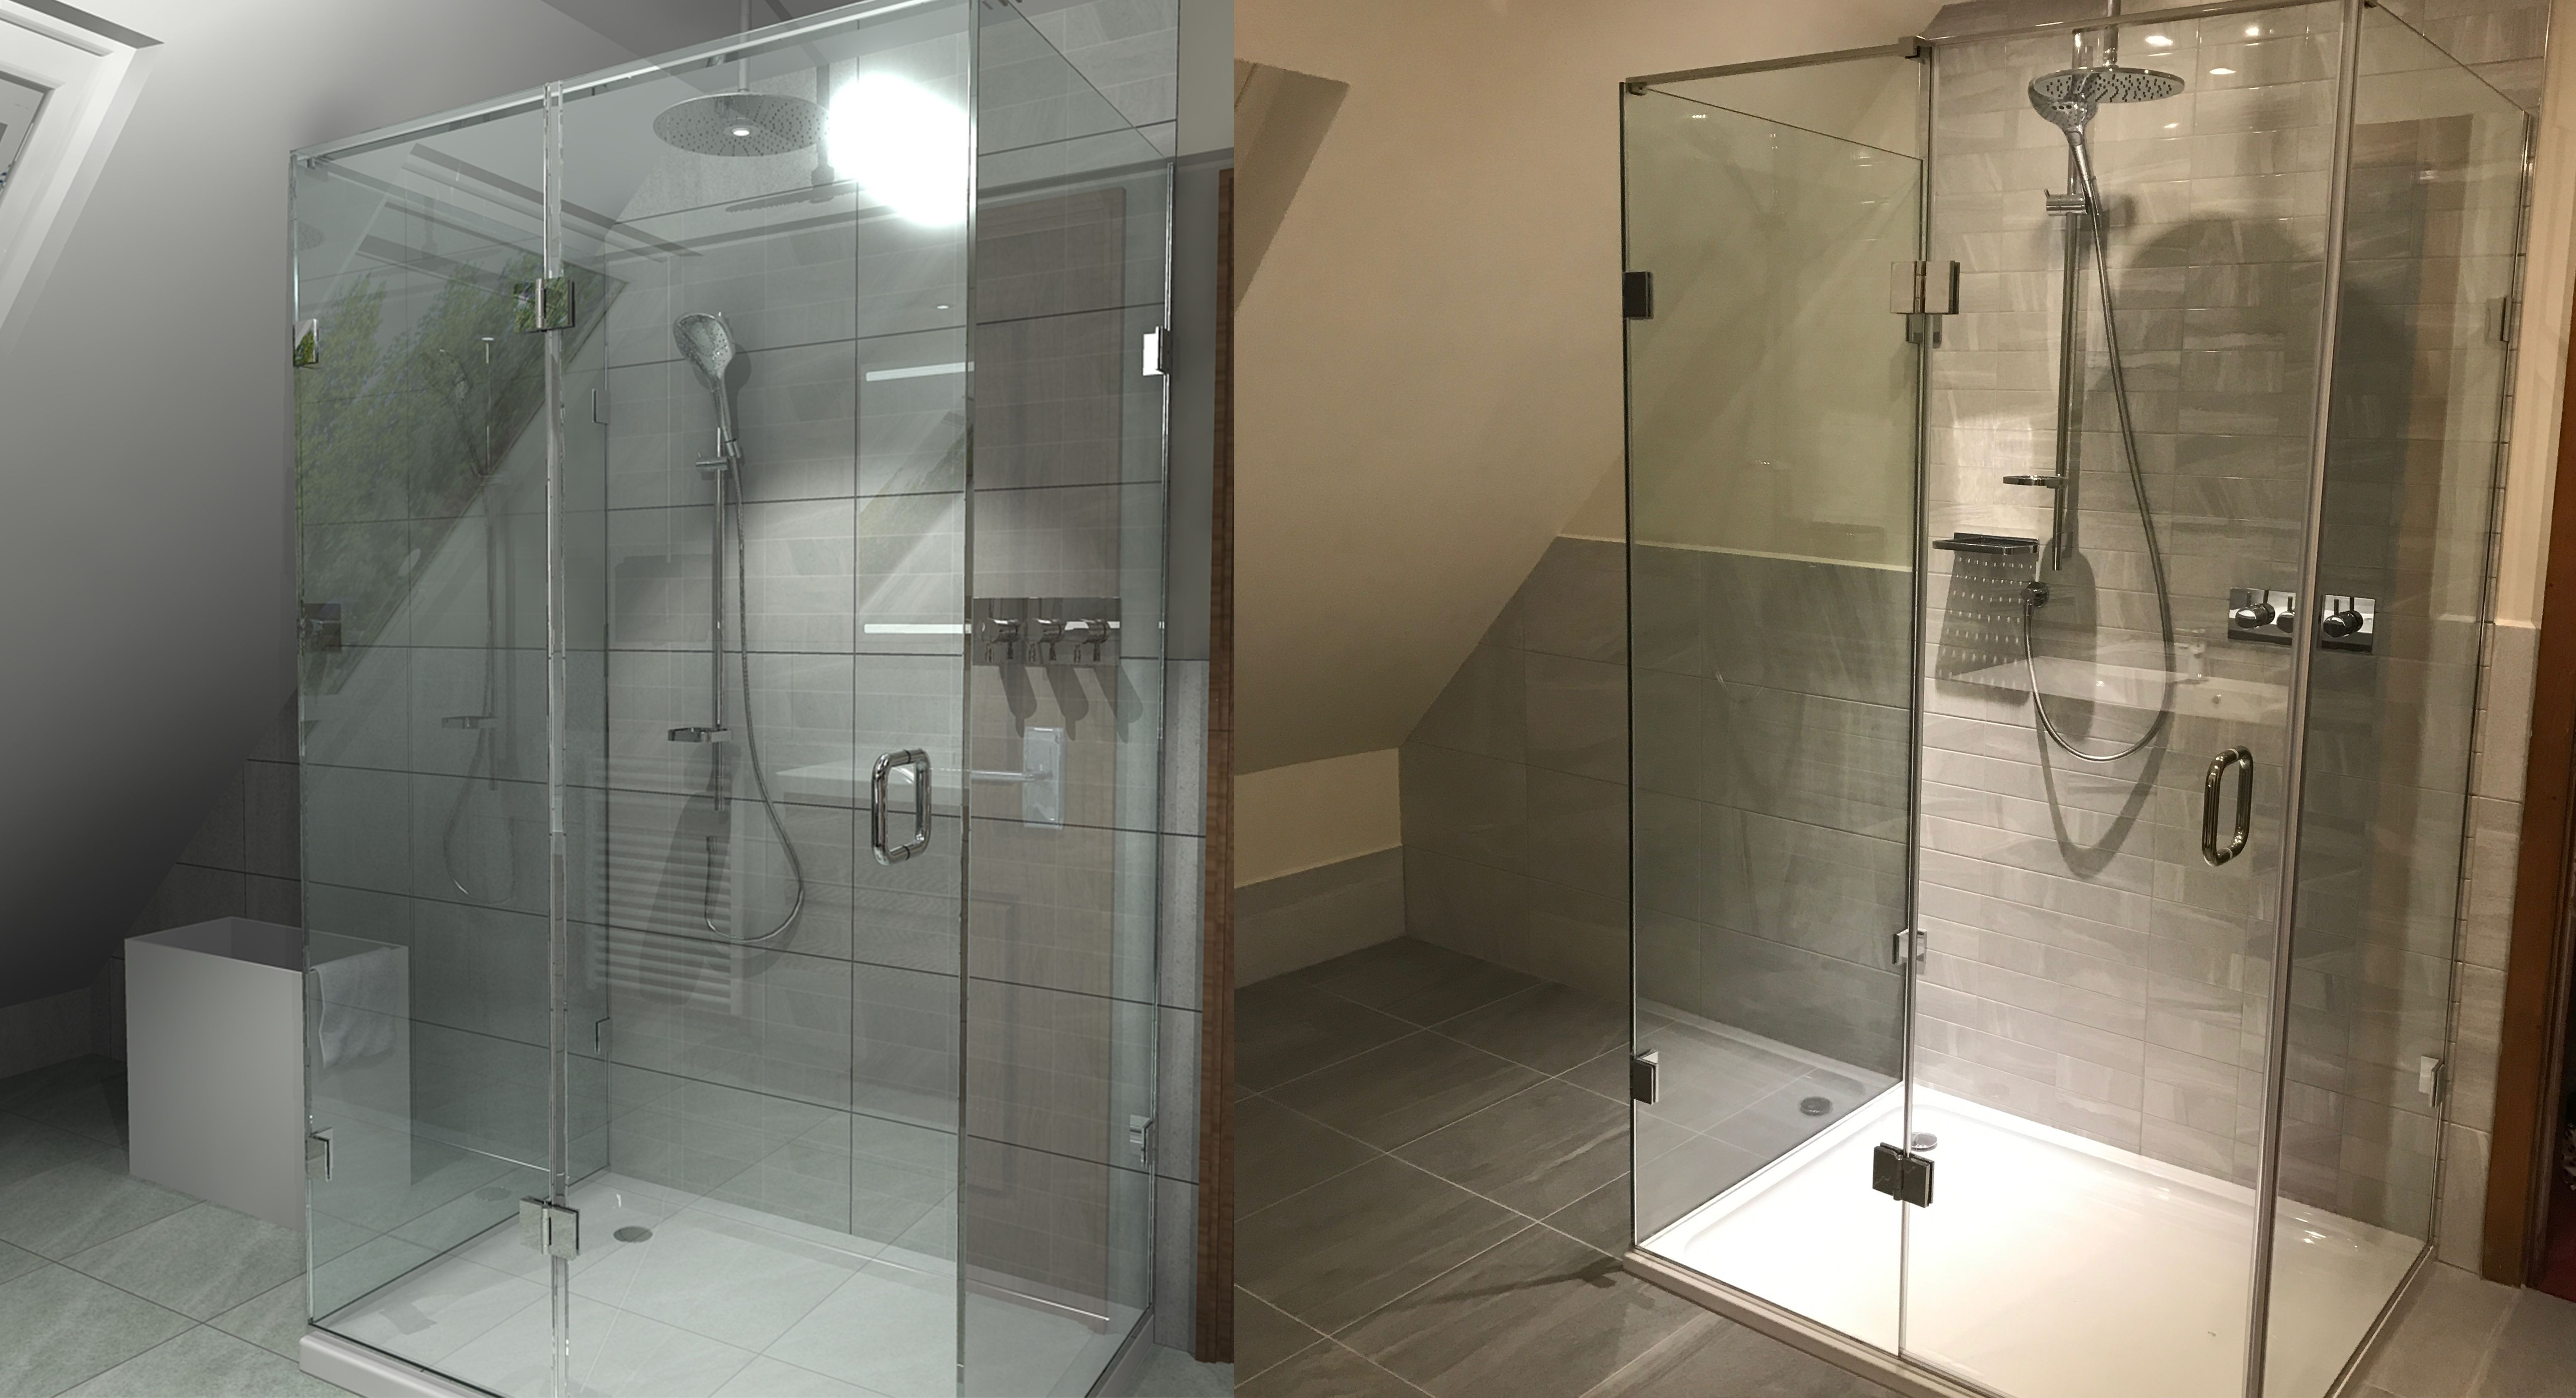 A Spacious Loft Conversion With 3 Sided Frameless Shower Enclosure